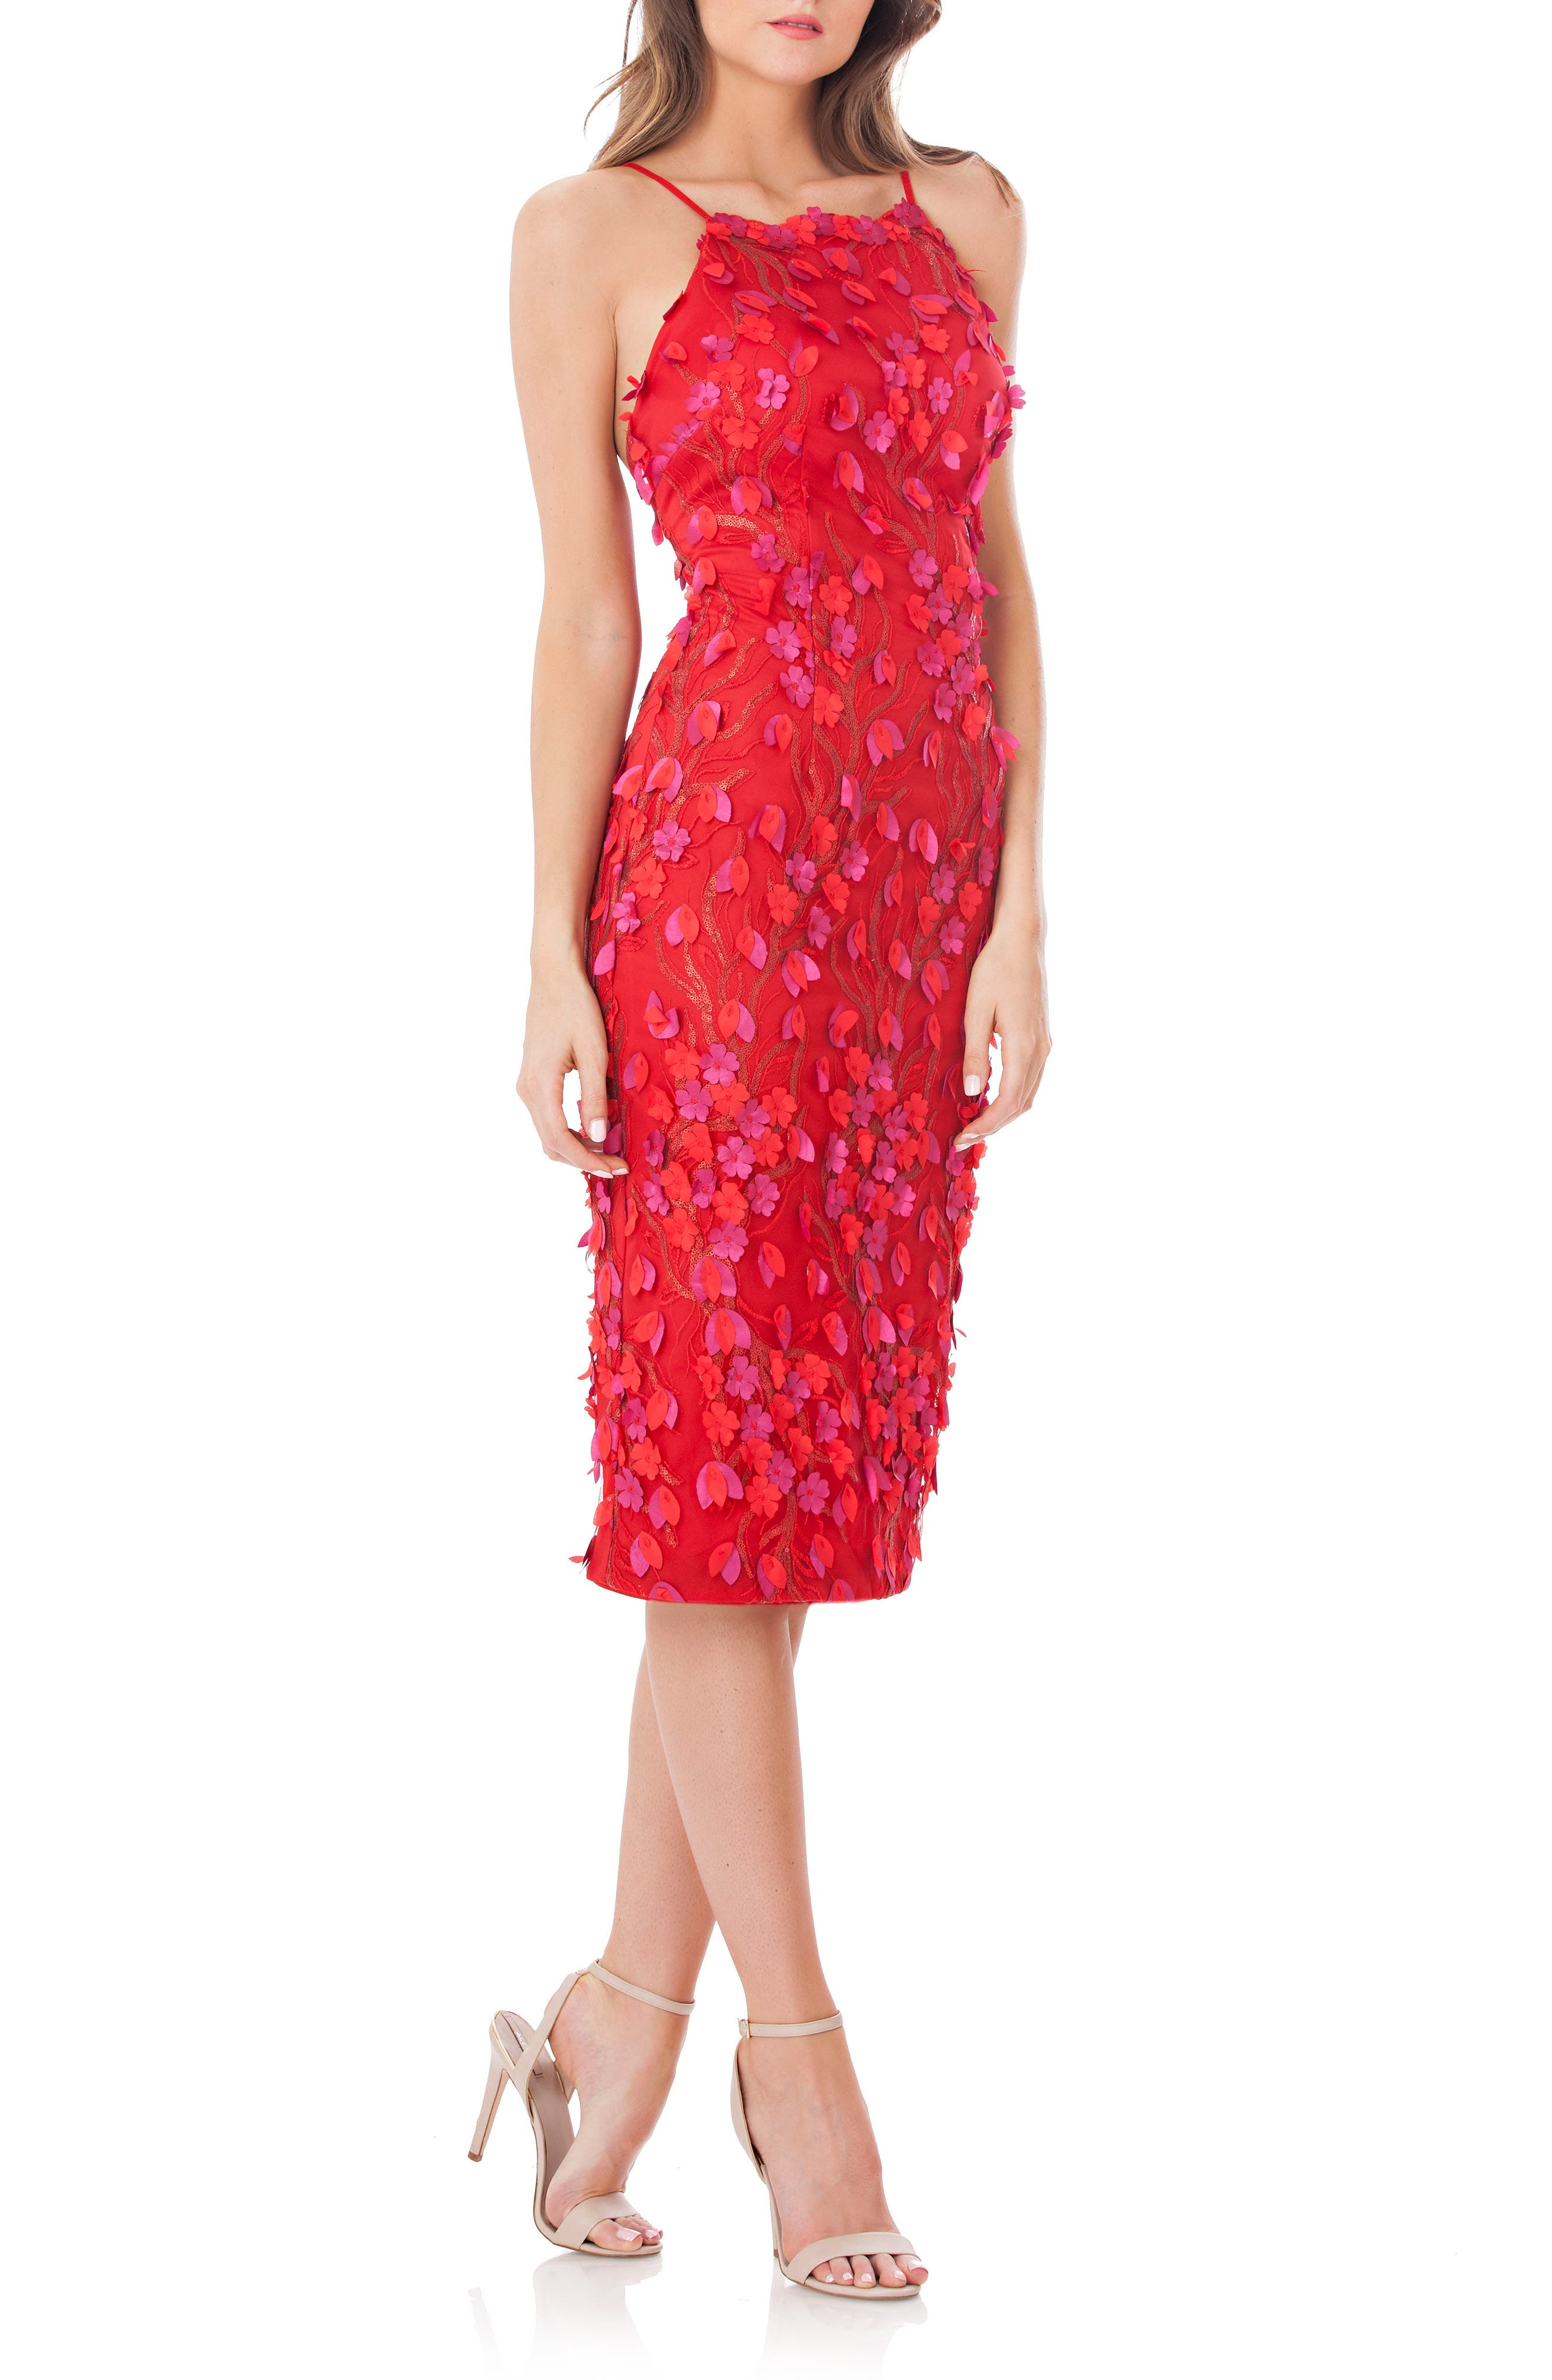 Petals Embellished Halter Neck Sheath Dress,                             Main thumbnail 1, color,                             Red